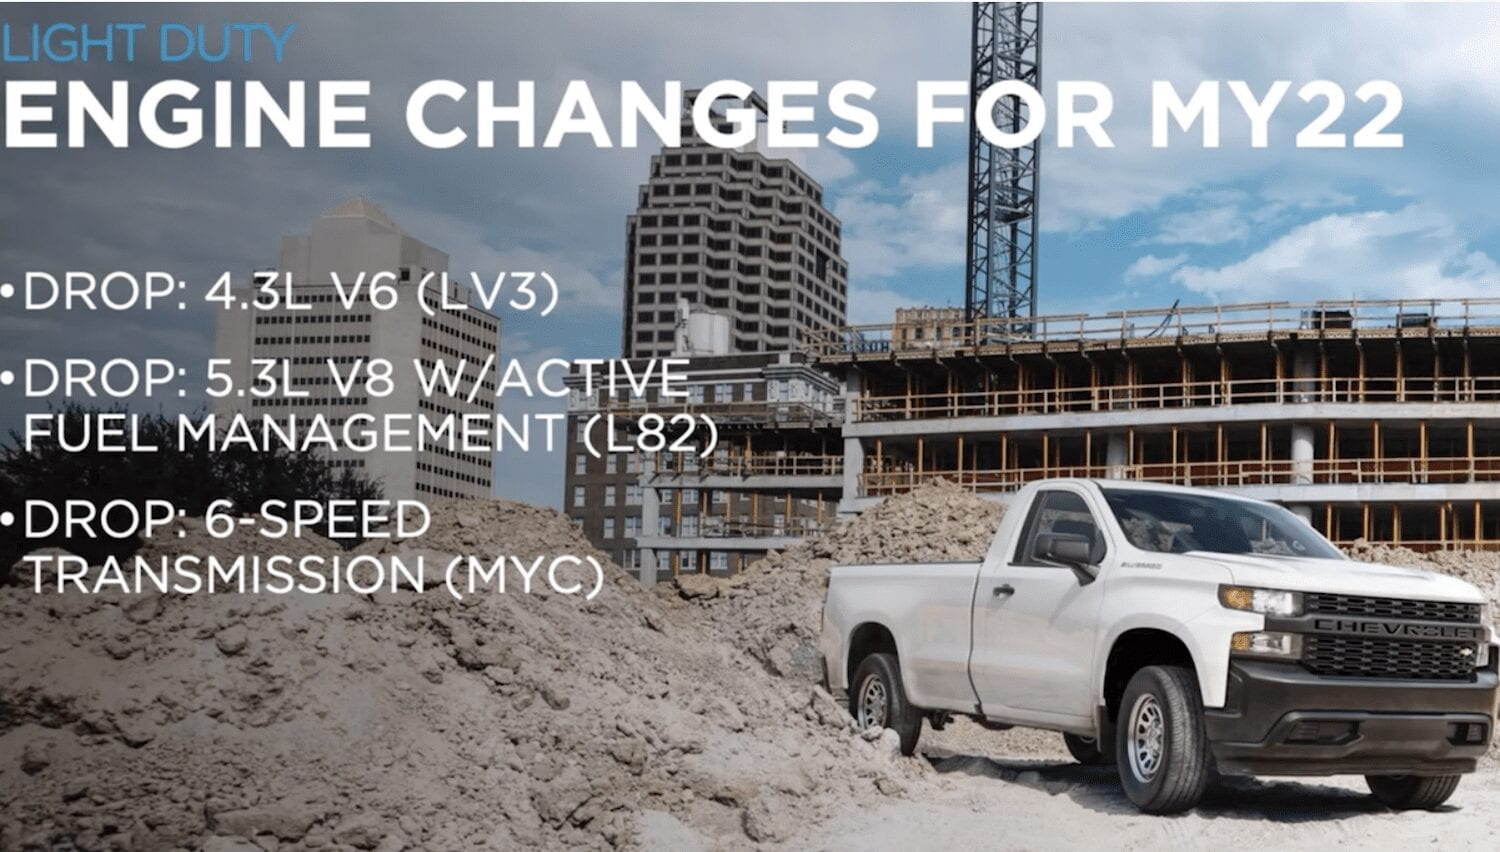 2022 Chevy Silverado 1500 Engine Changes Leaked